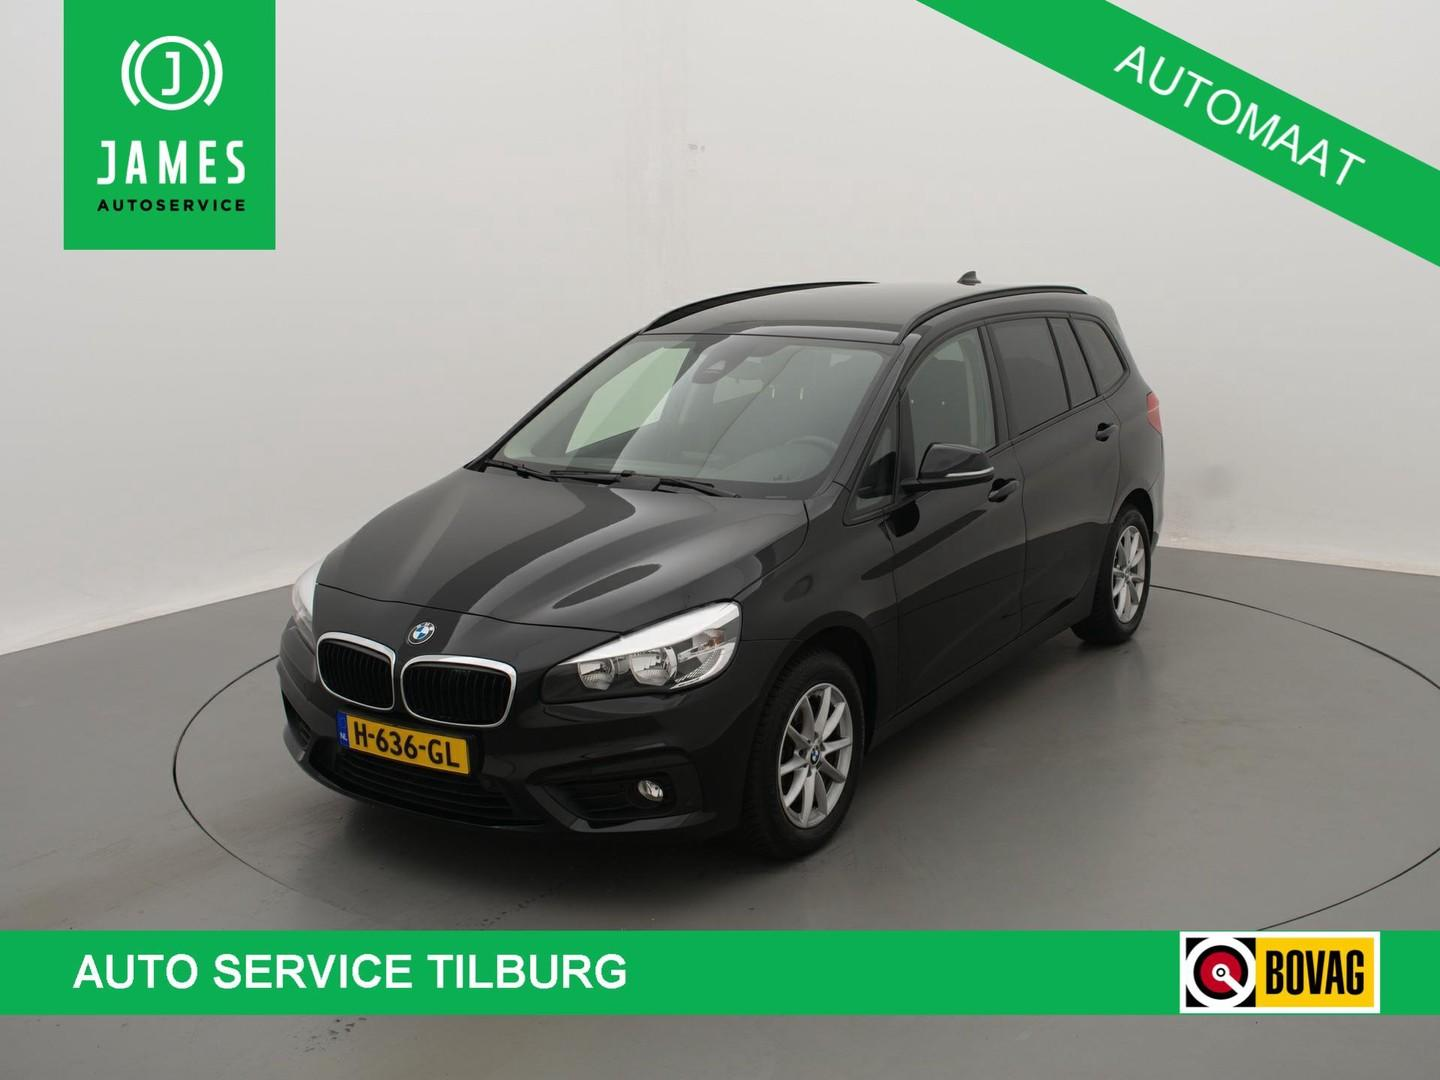 Bmw 2 serie Gran tourer 218i luxury 7p. autom. navi clima cruise privacy-glass